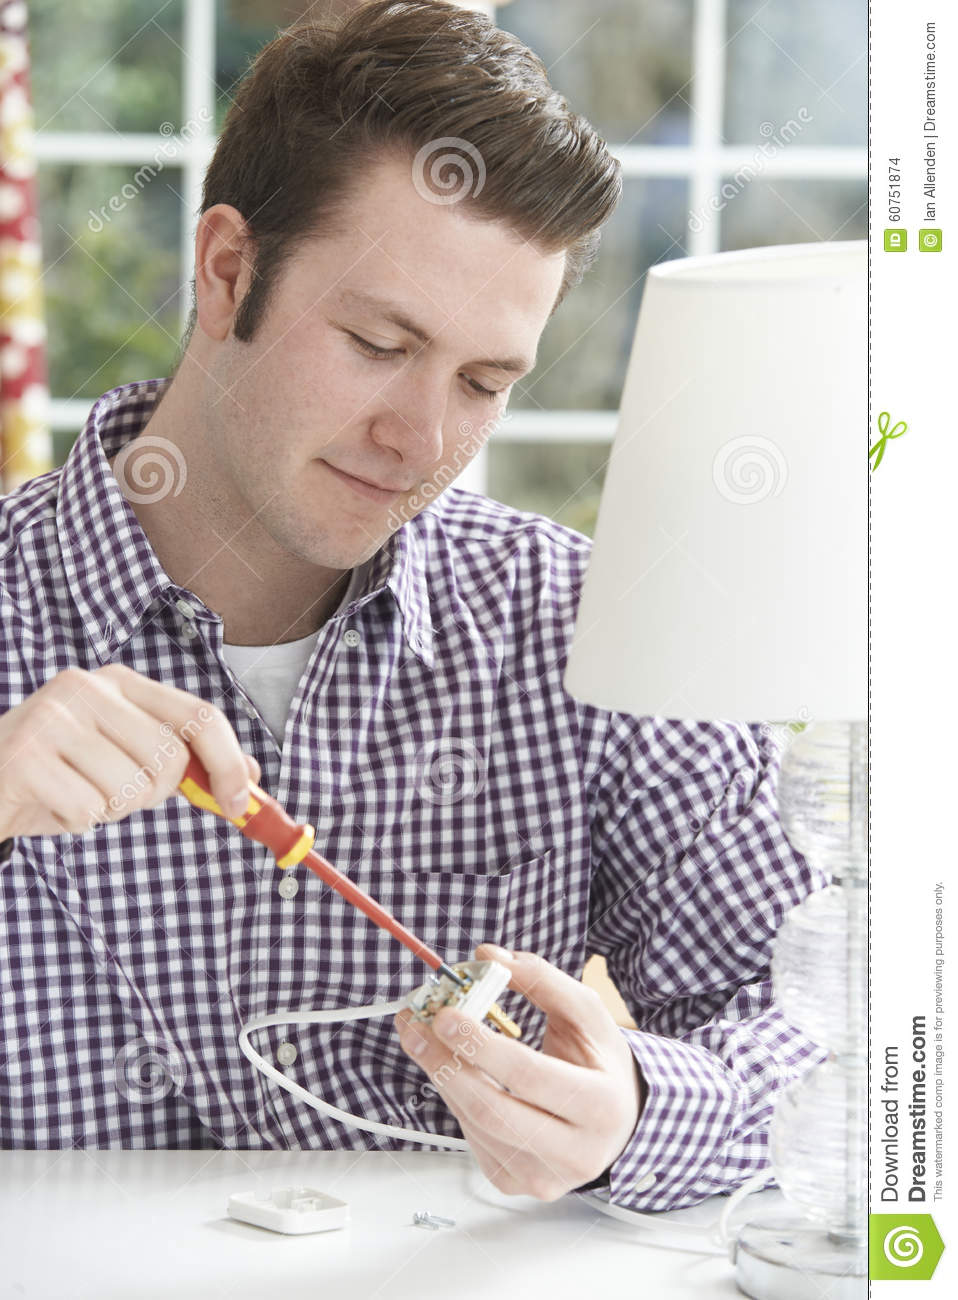 Man Wiring Electrical Plug On Lamp At Home Stock Photo Image Of Download Fuse